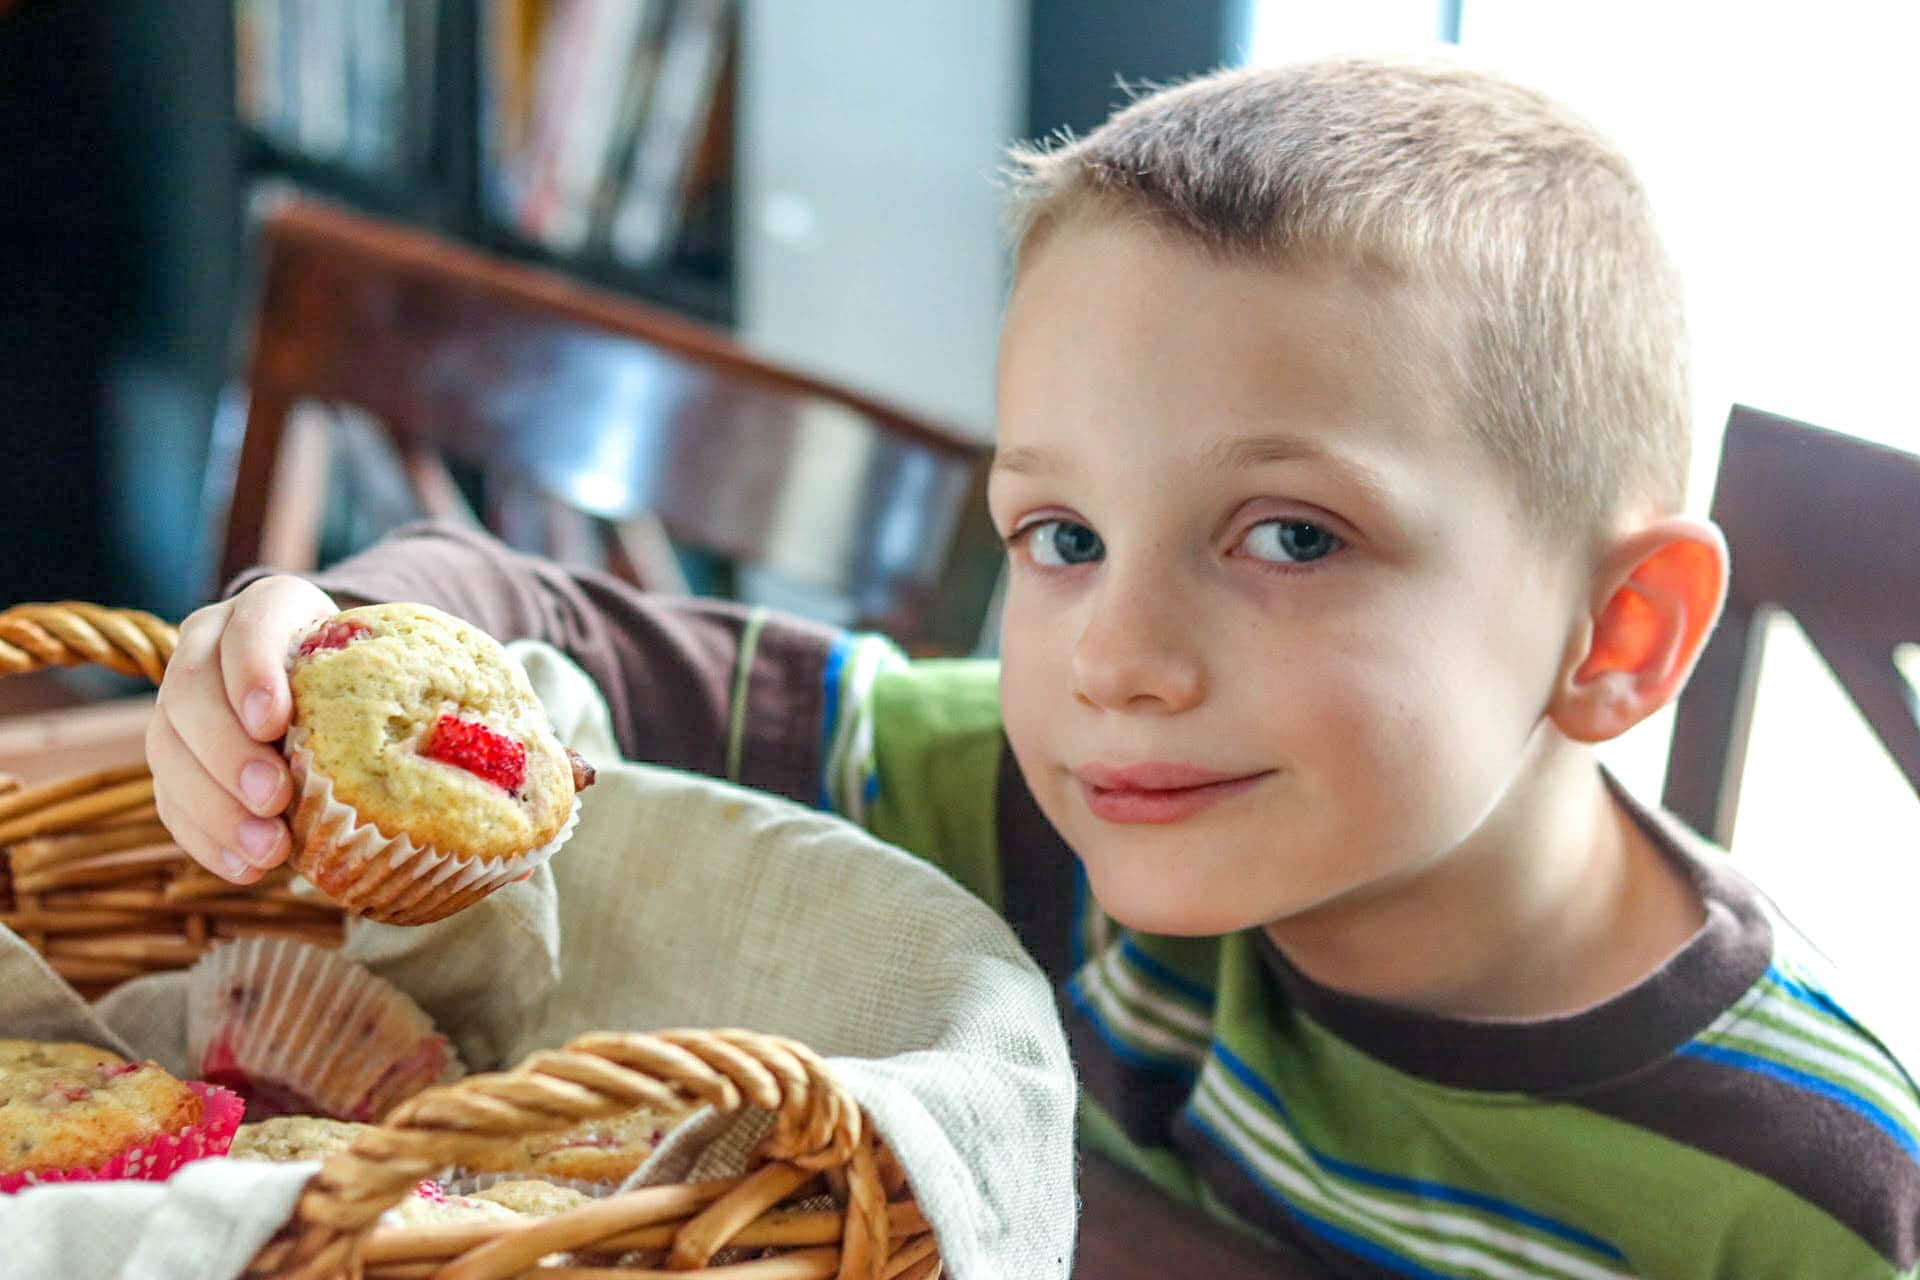 Boy holding strawberry banana muffin over wicker basket lined with towel and filled with more muffins.